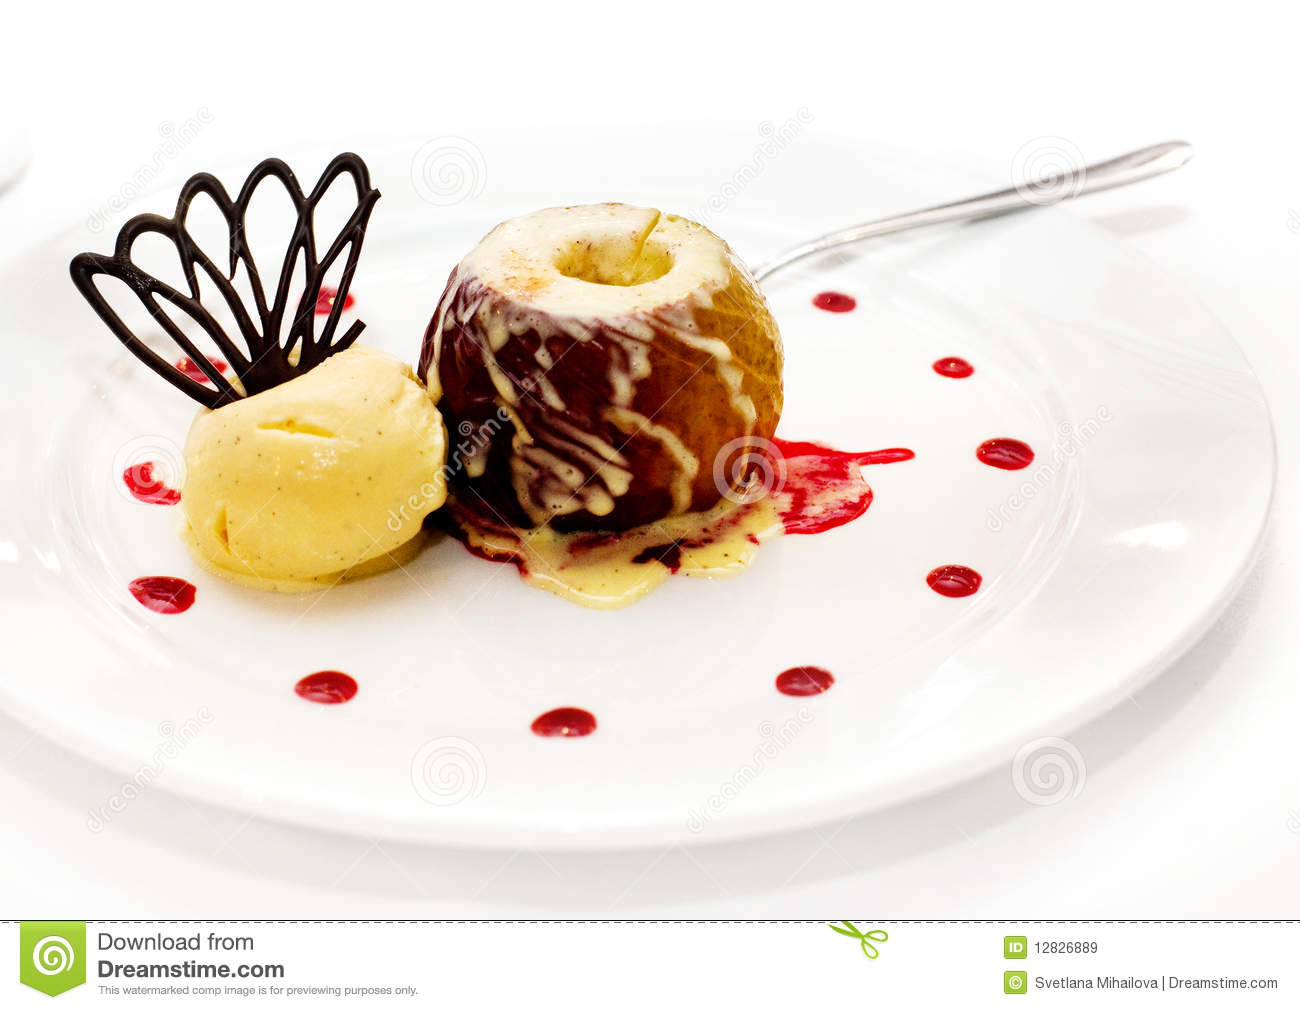 Baked Apple With Ice Cream Royalty Free Stock Images - Image: 12826889